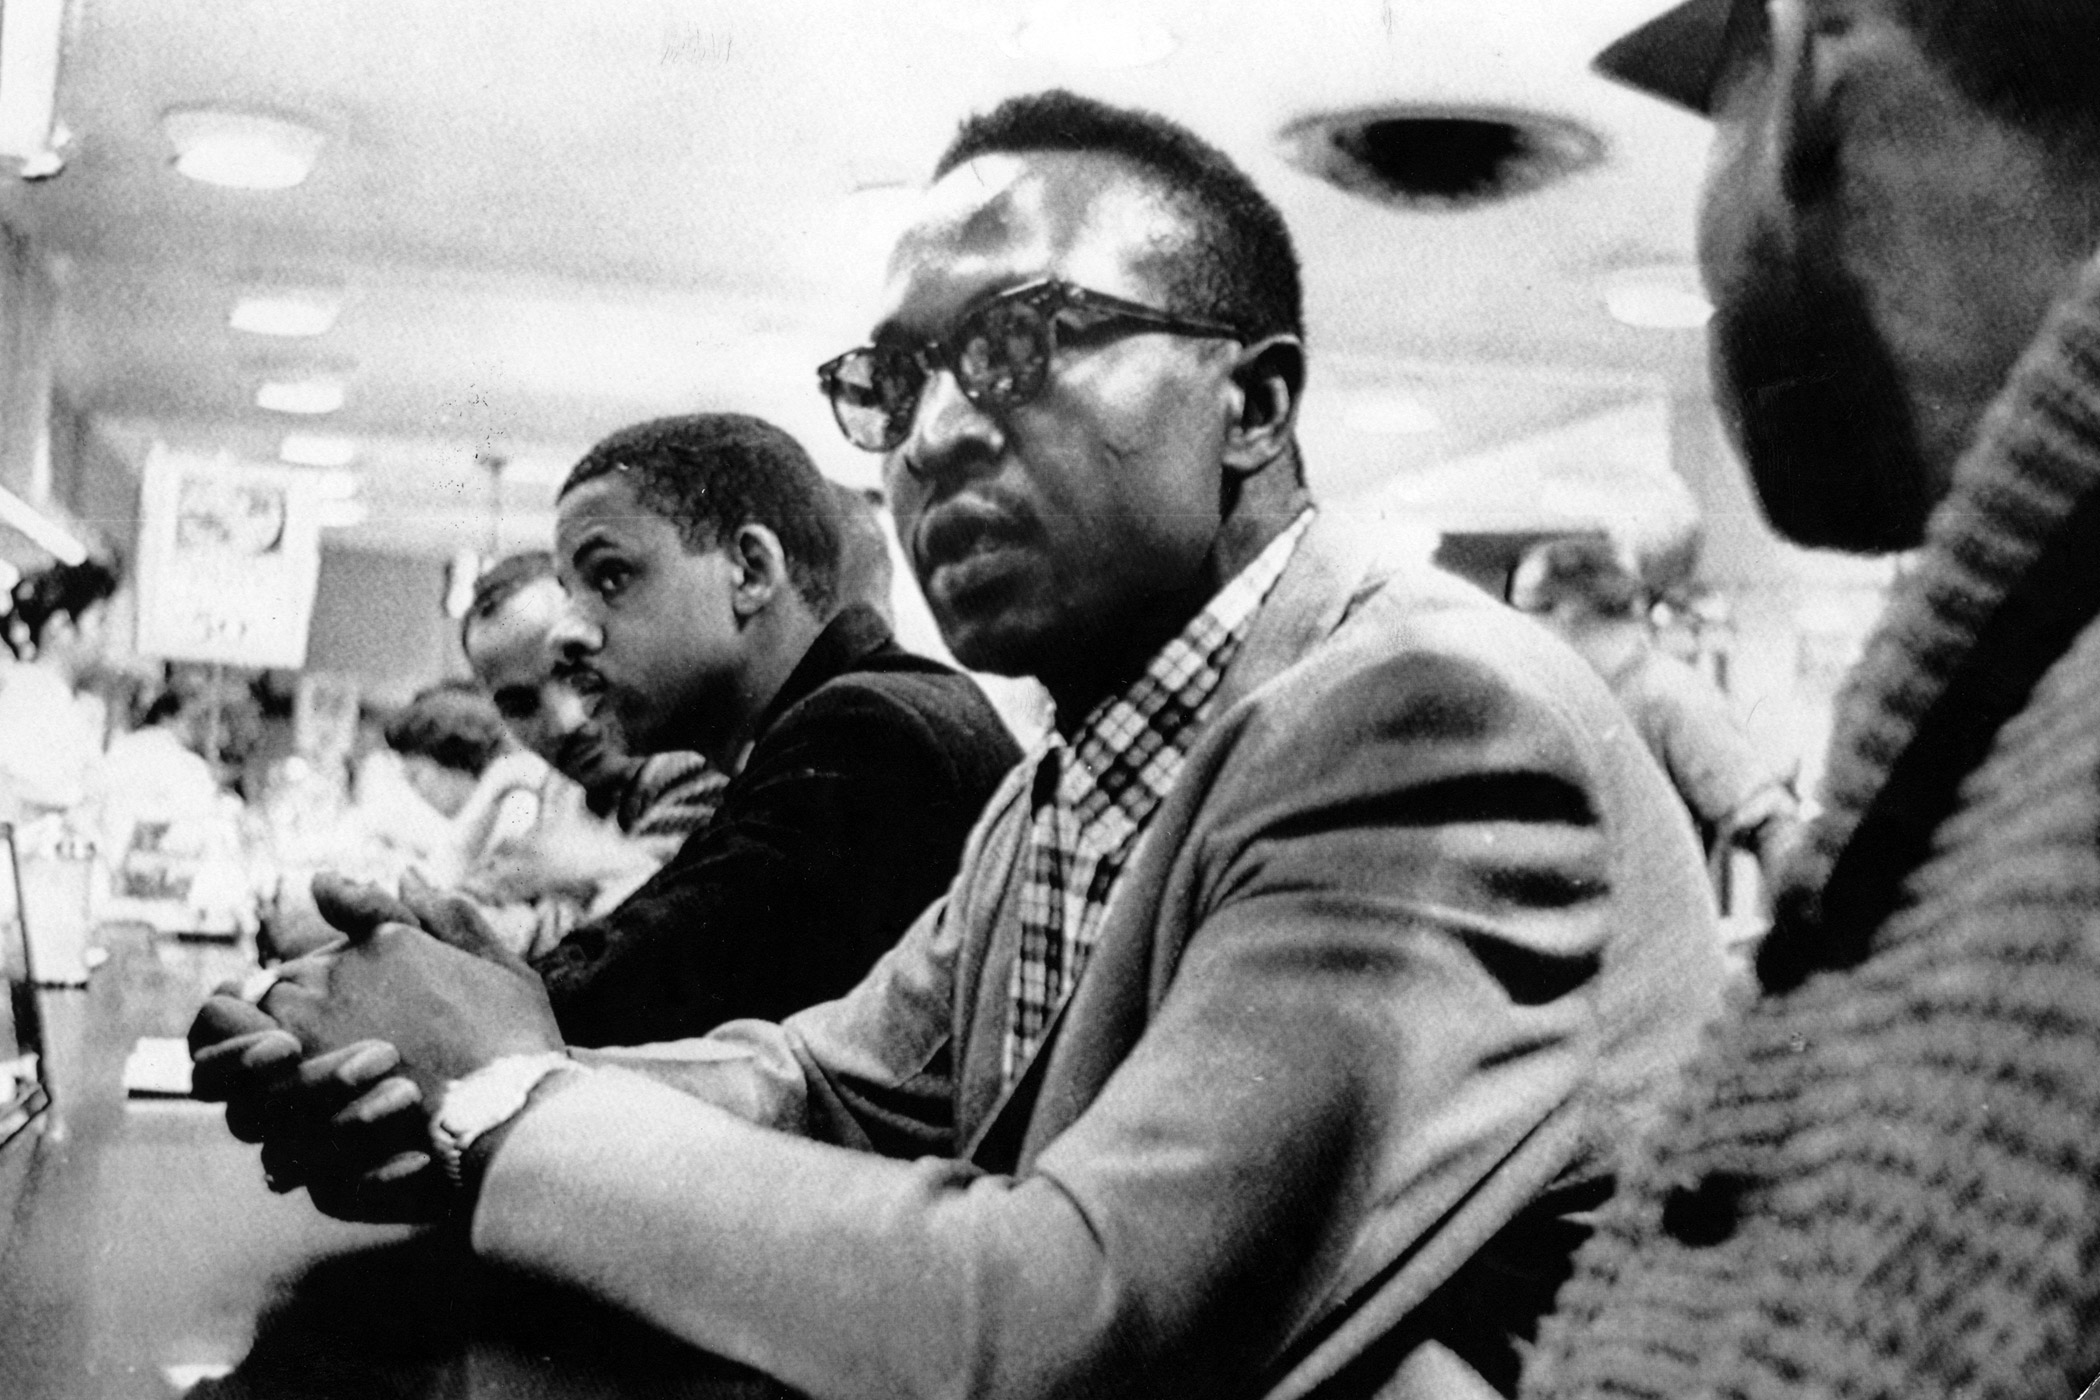 The Greensboro sit-ins, started by four black students from the North Carolina Agricultural and Technical State University, were a peaceful protest of the segregated lunch counter inside the Woolworth store in Greensboro, N.C. in February 1960.  The demonstrations, which spread to nearby cities and states, eventually led to the desegregation of the Greensboro Woolworth store.